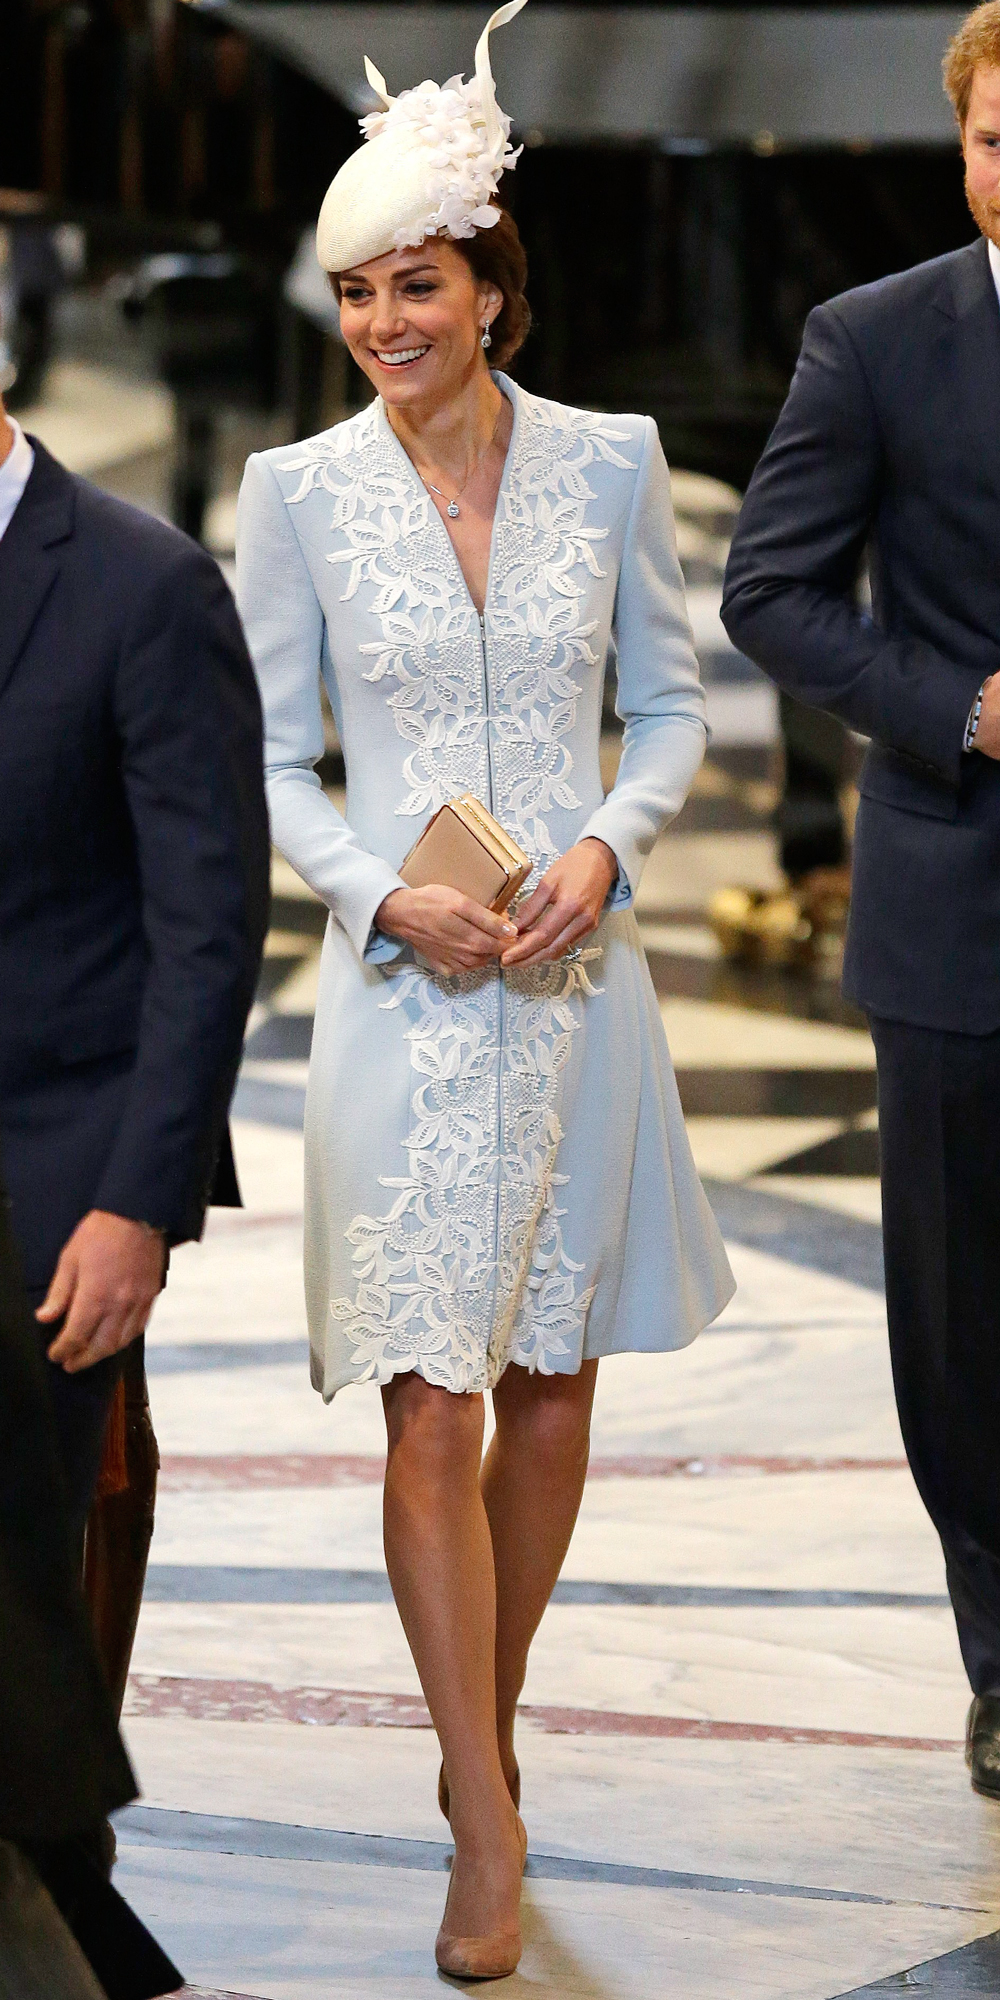 Prince William, Duke of Cambridge, Catherine, Duchess of Cambridge and Prince Harry arrive for a service of thanksgiving for Queen Elizabeth II's 90th birthday at St Paul's cathedral on June 10, 2016 in London, United Kingdom.